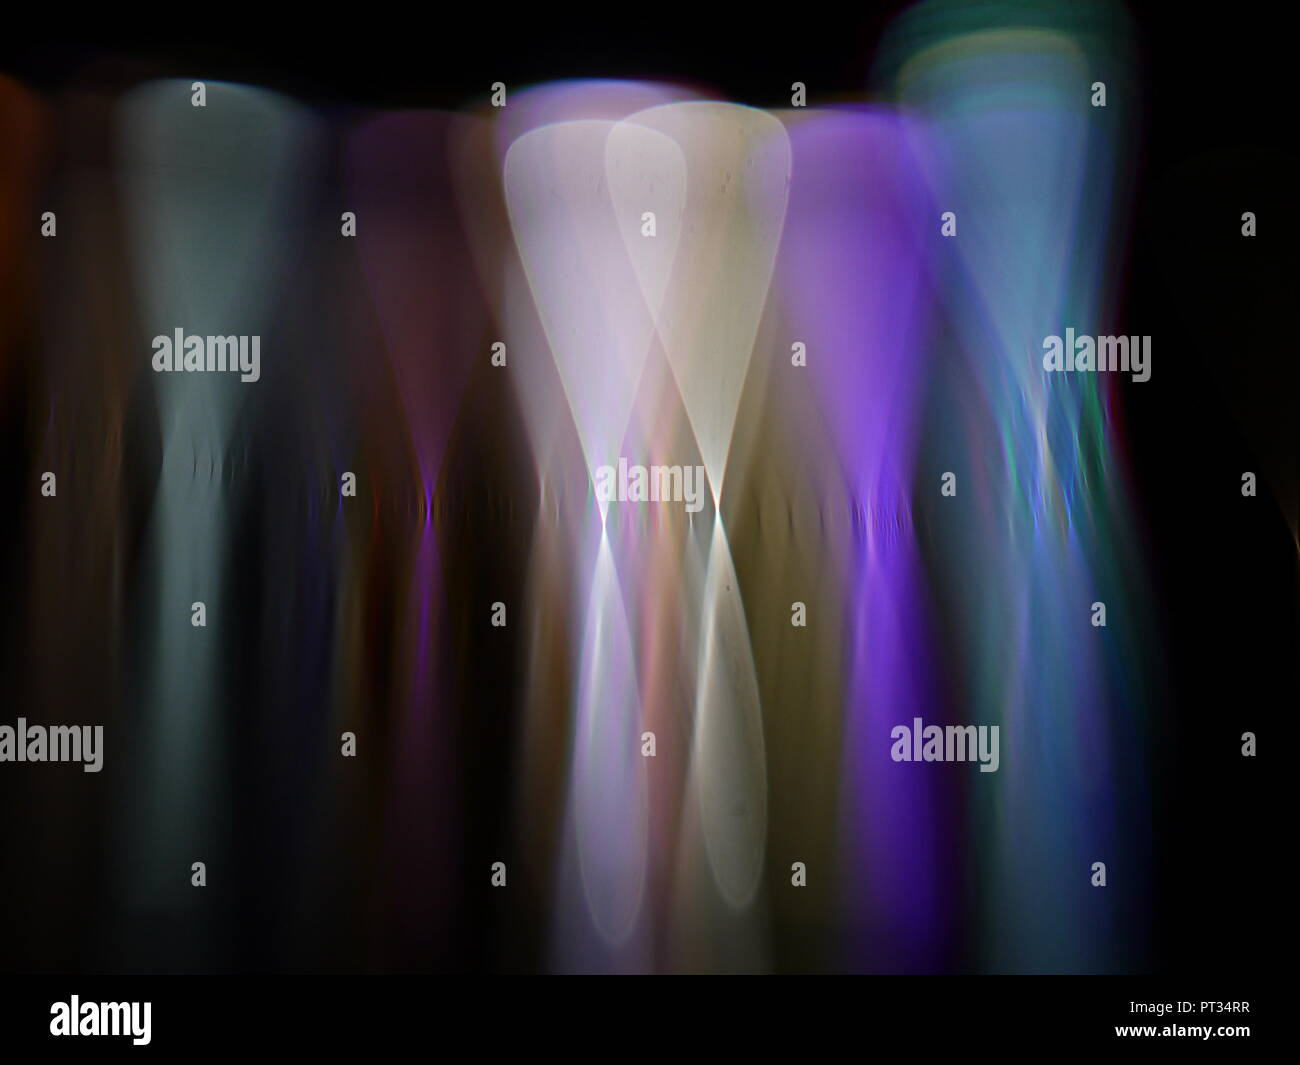 Graceful light shapes shimmering in a group. - Stock Image